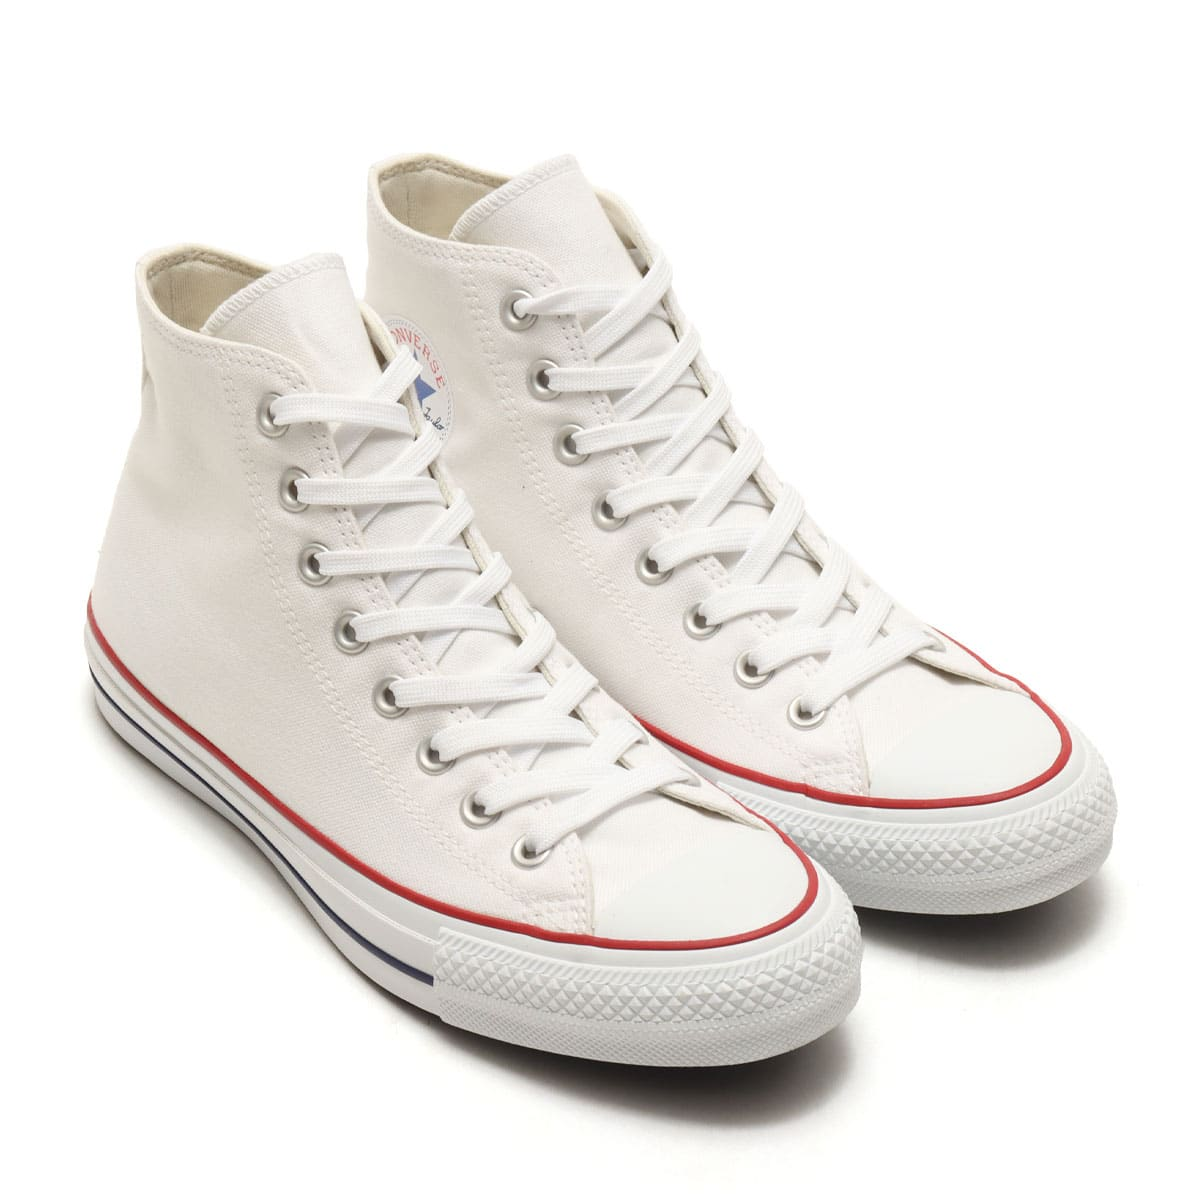 CONVERSE ALL STAR 100 HRGN HI WHITE 21SS-I_photo_large